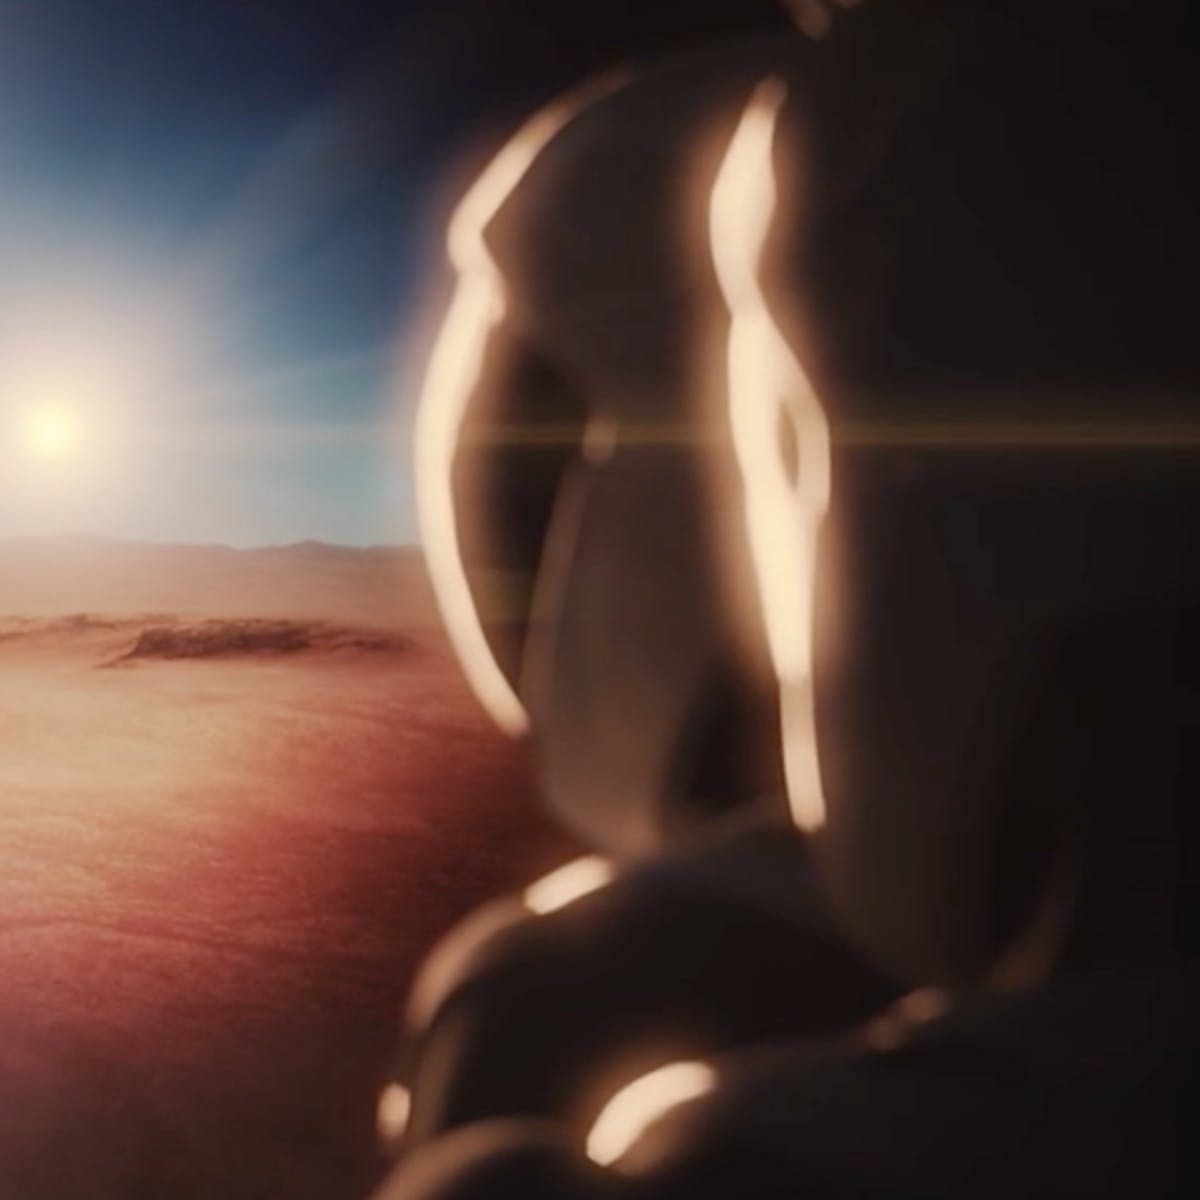 Elon Musk's SpaceX Starship could kill life on Mars